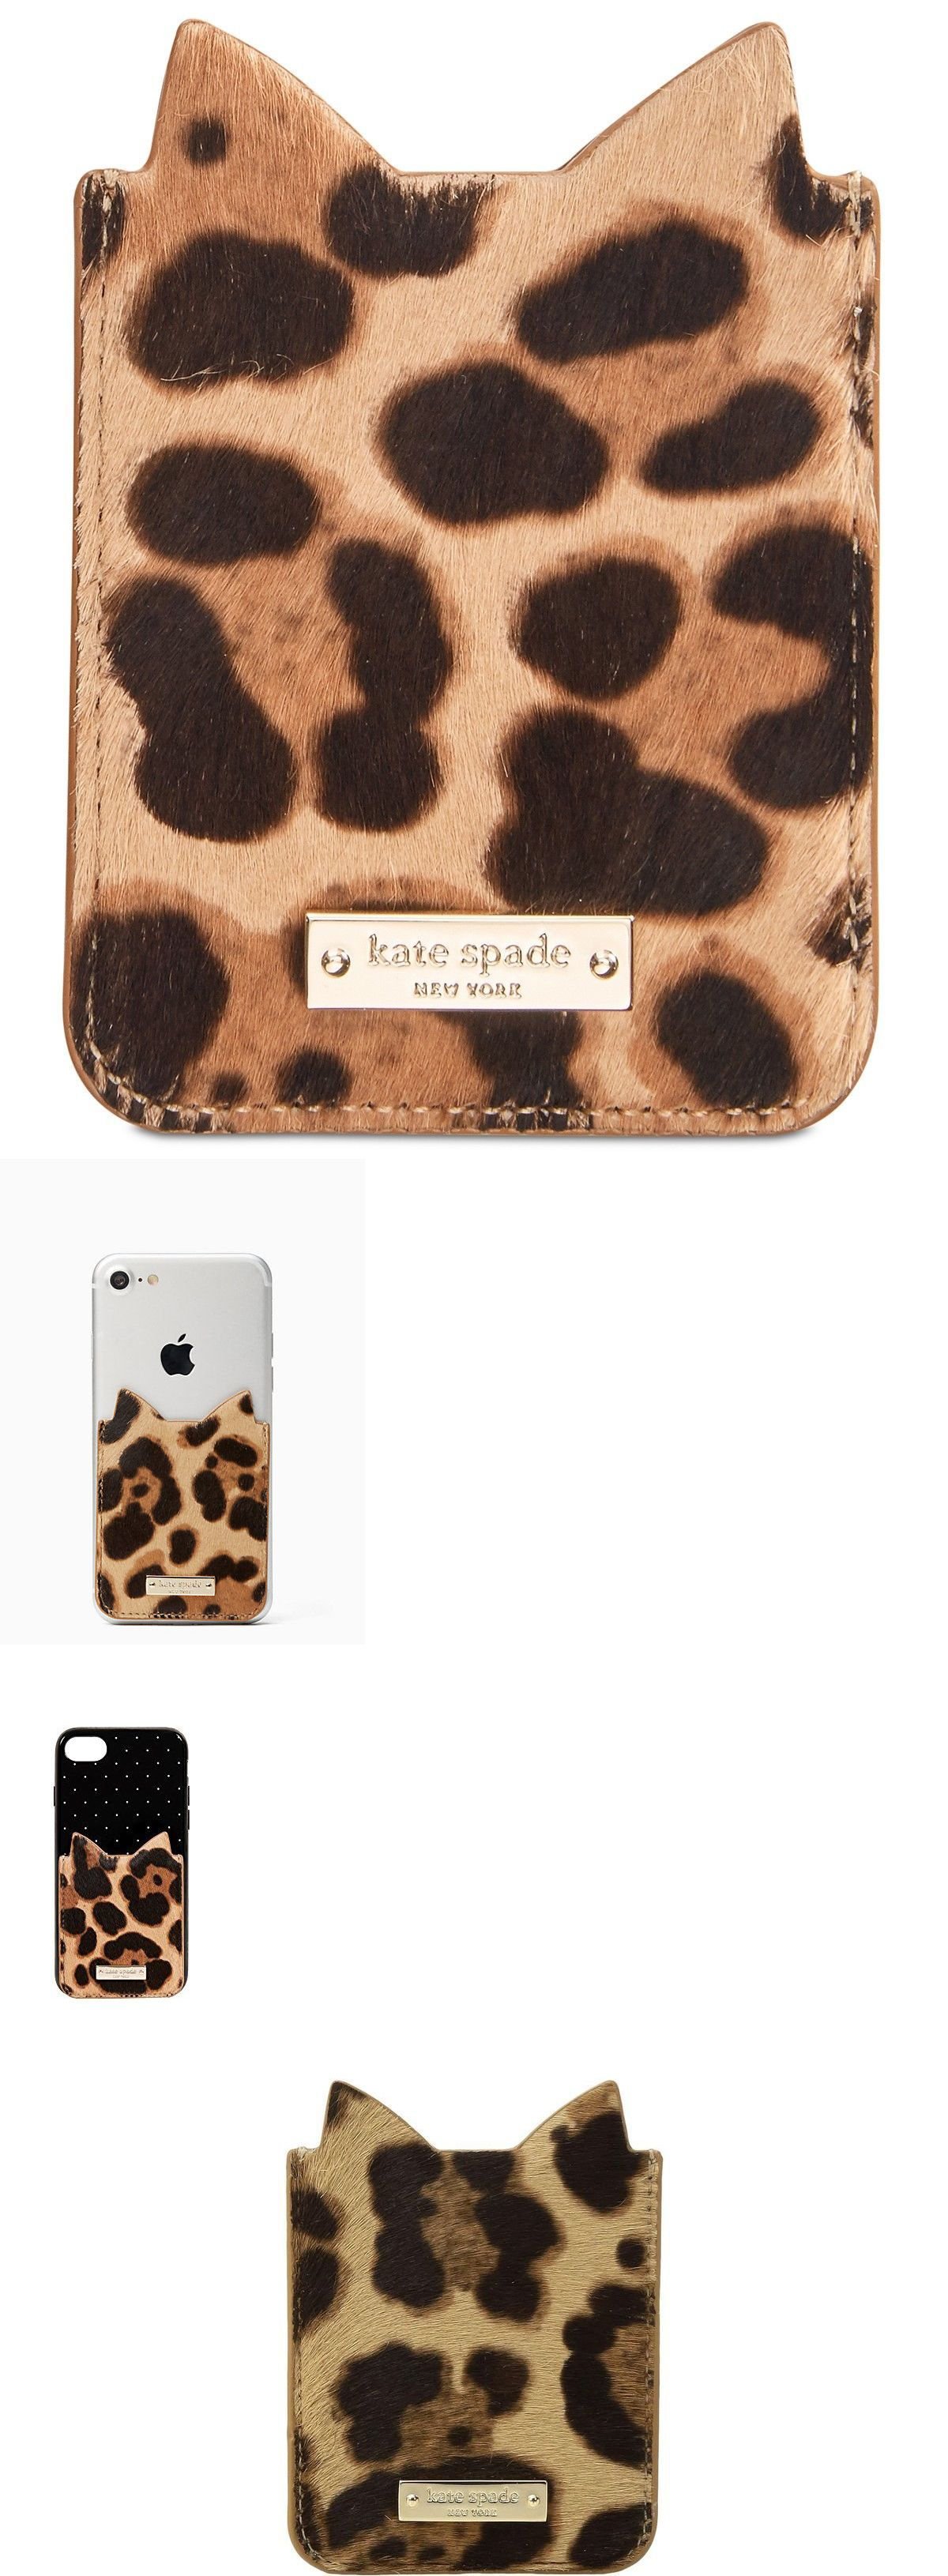 Faceplates Decals And Stickers 20373 New Kate Spade Cat Sticker Pocket Leopard Print Calf Hair Phone Card Holder 38 Buy It Phone Card Phone Stickers Phone [ 3261 x 1200 Pixel ]